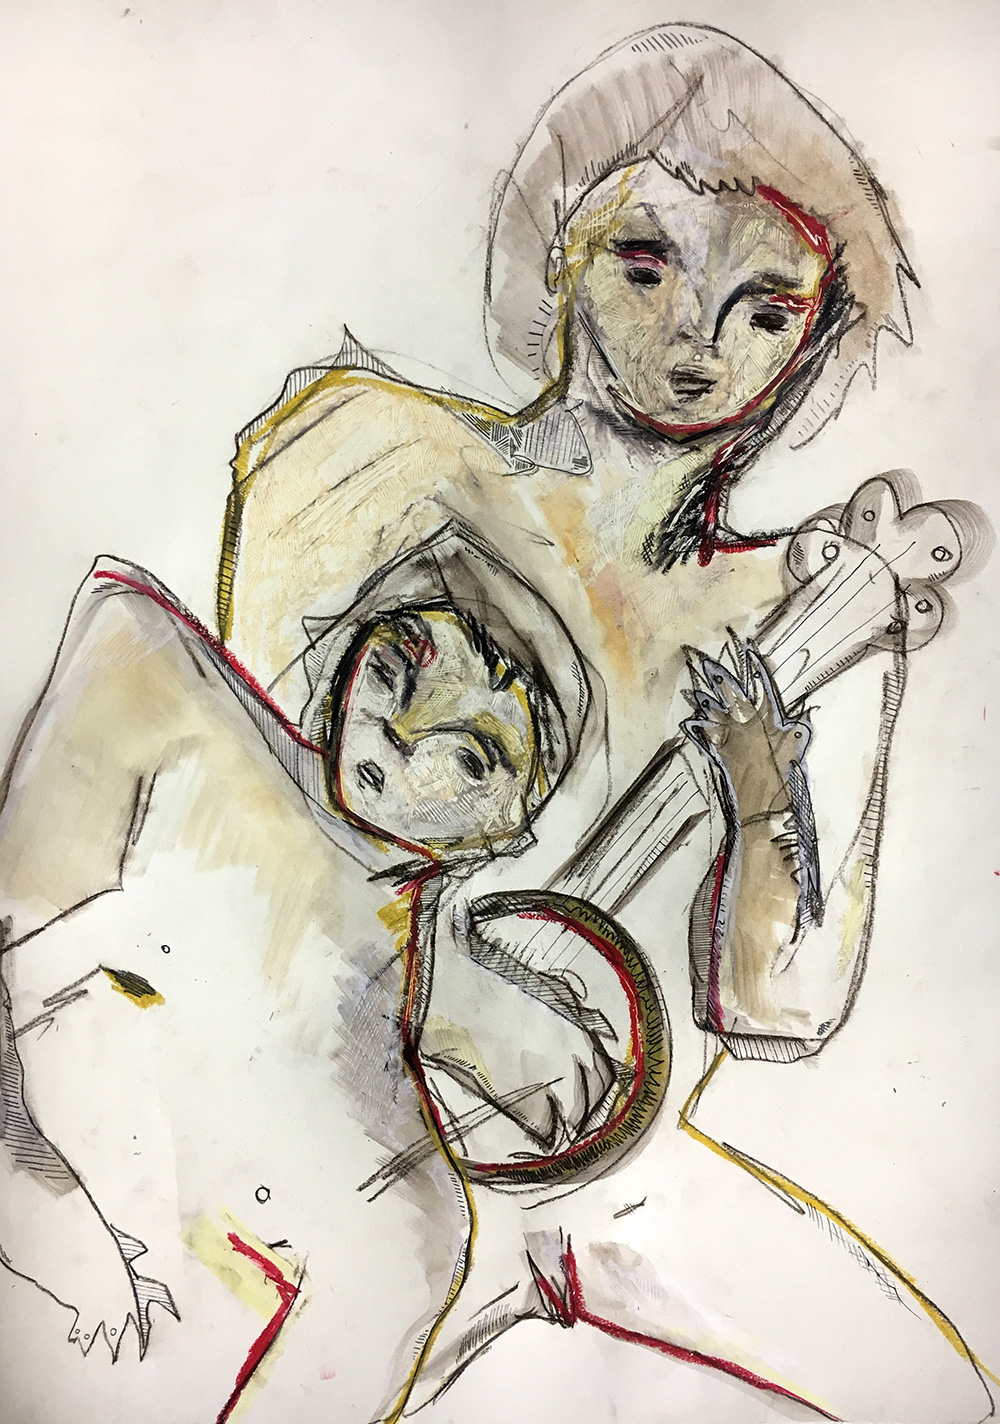 """Untitled Drawing"" by Joshua Jenkins, Pastel, Charcoal, and Graphite, 24x18in, 2017 $350"